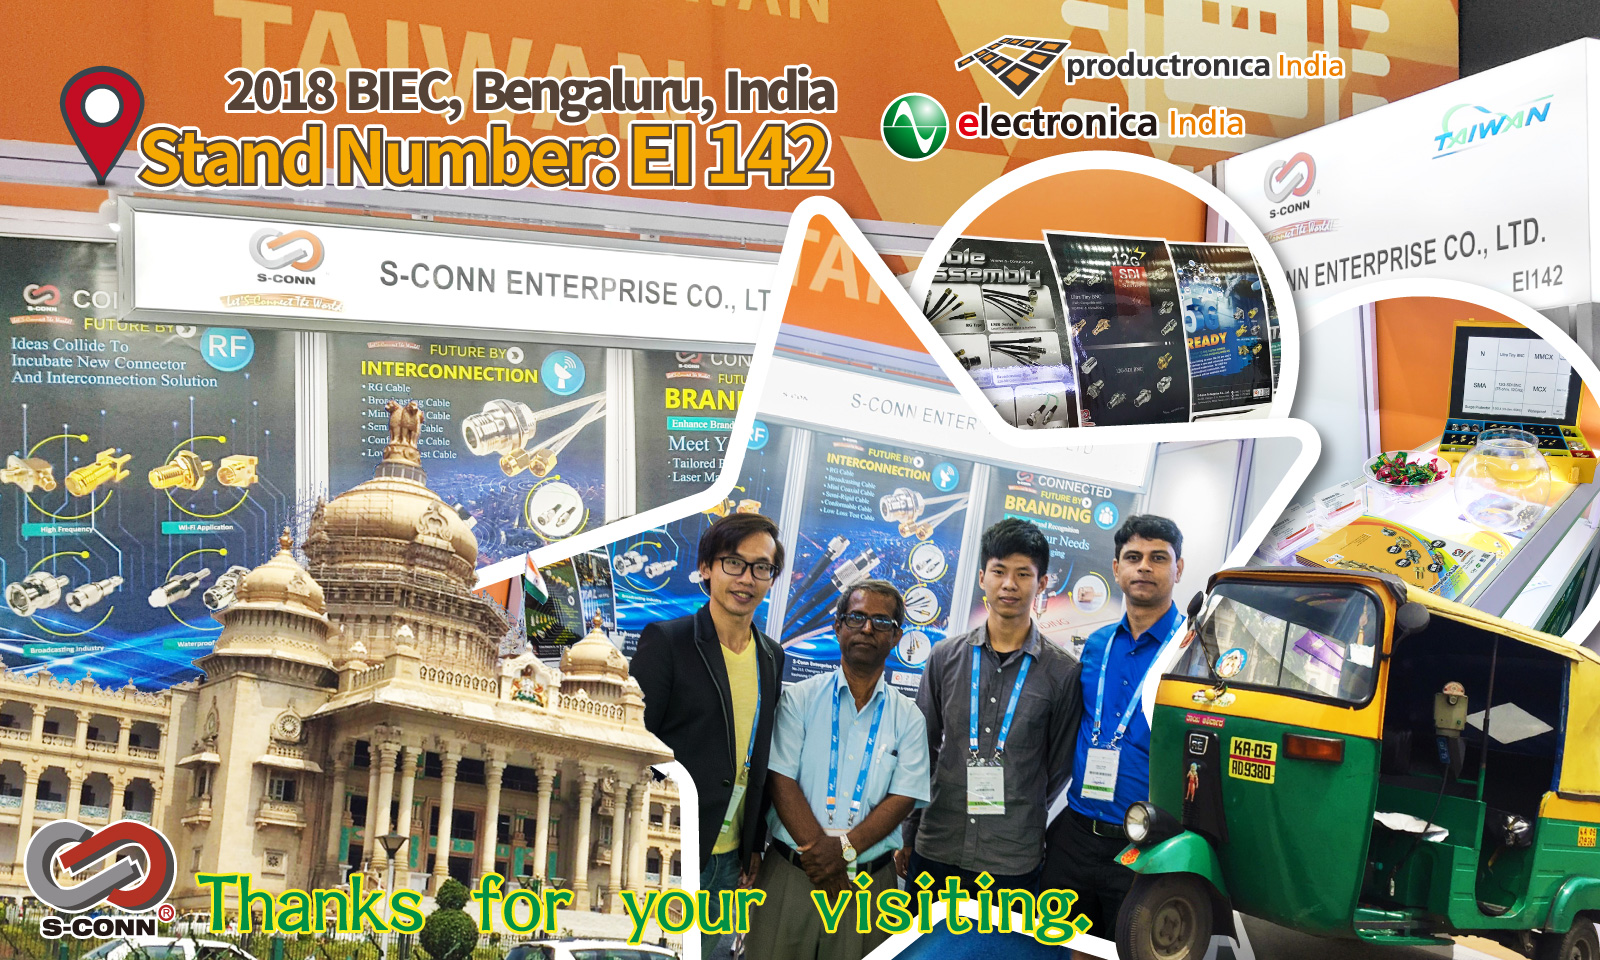 2018 Electronica India :Thanks for your visiting.